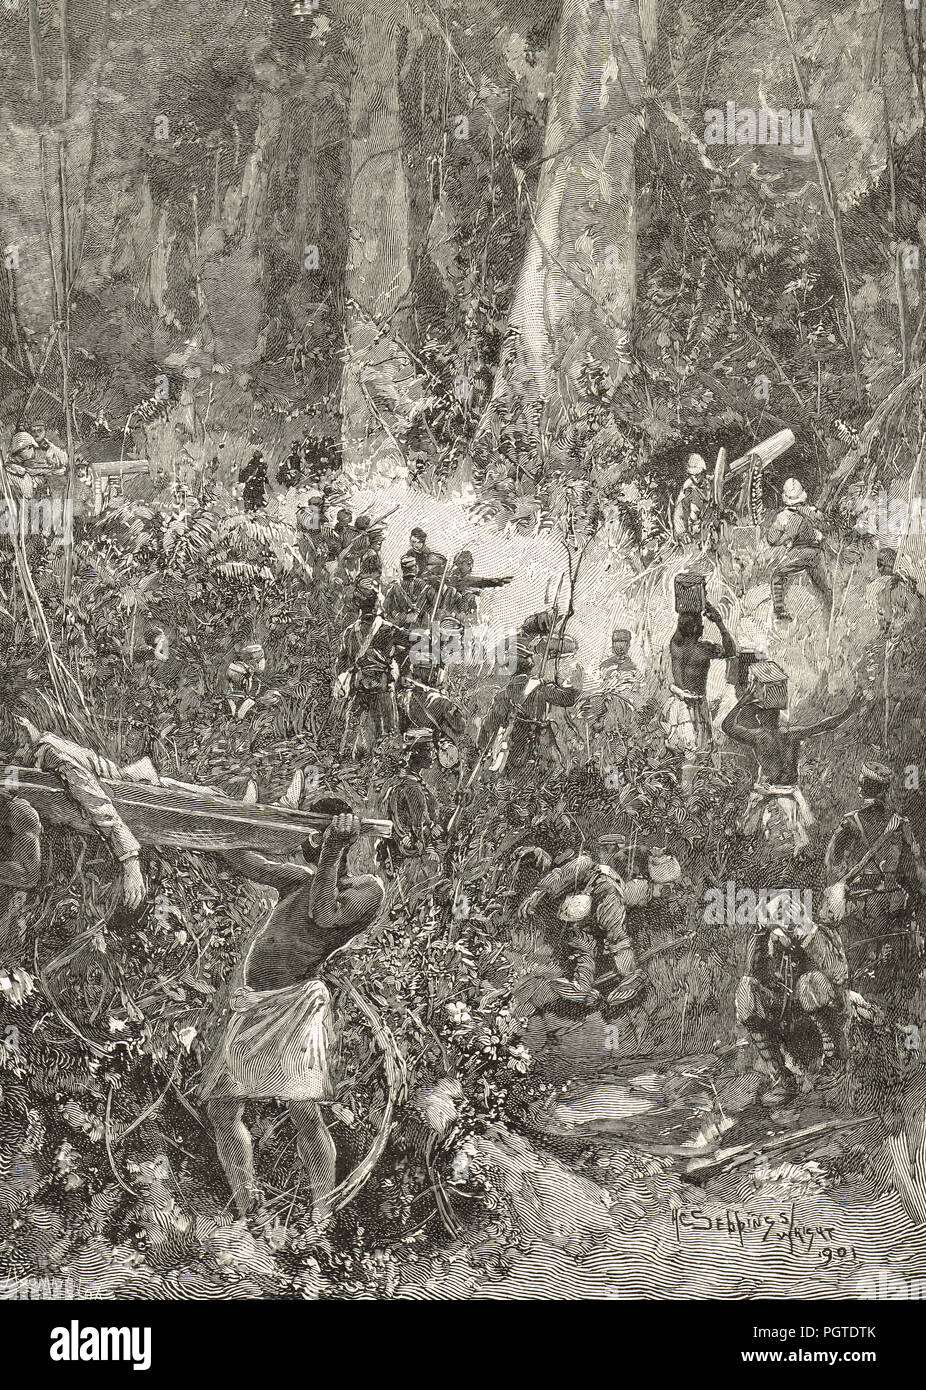 A fight in the Forest , Ashanti war of 1900,  5th Anglo-Ashanti war, also known as the War of the Golden Stool - Stock Image